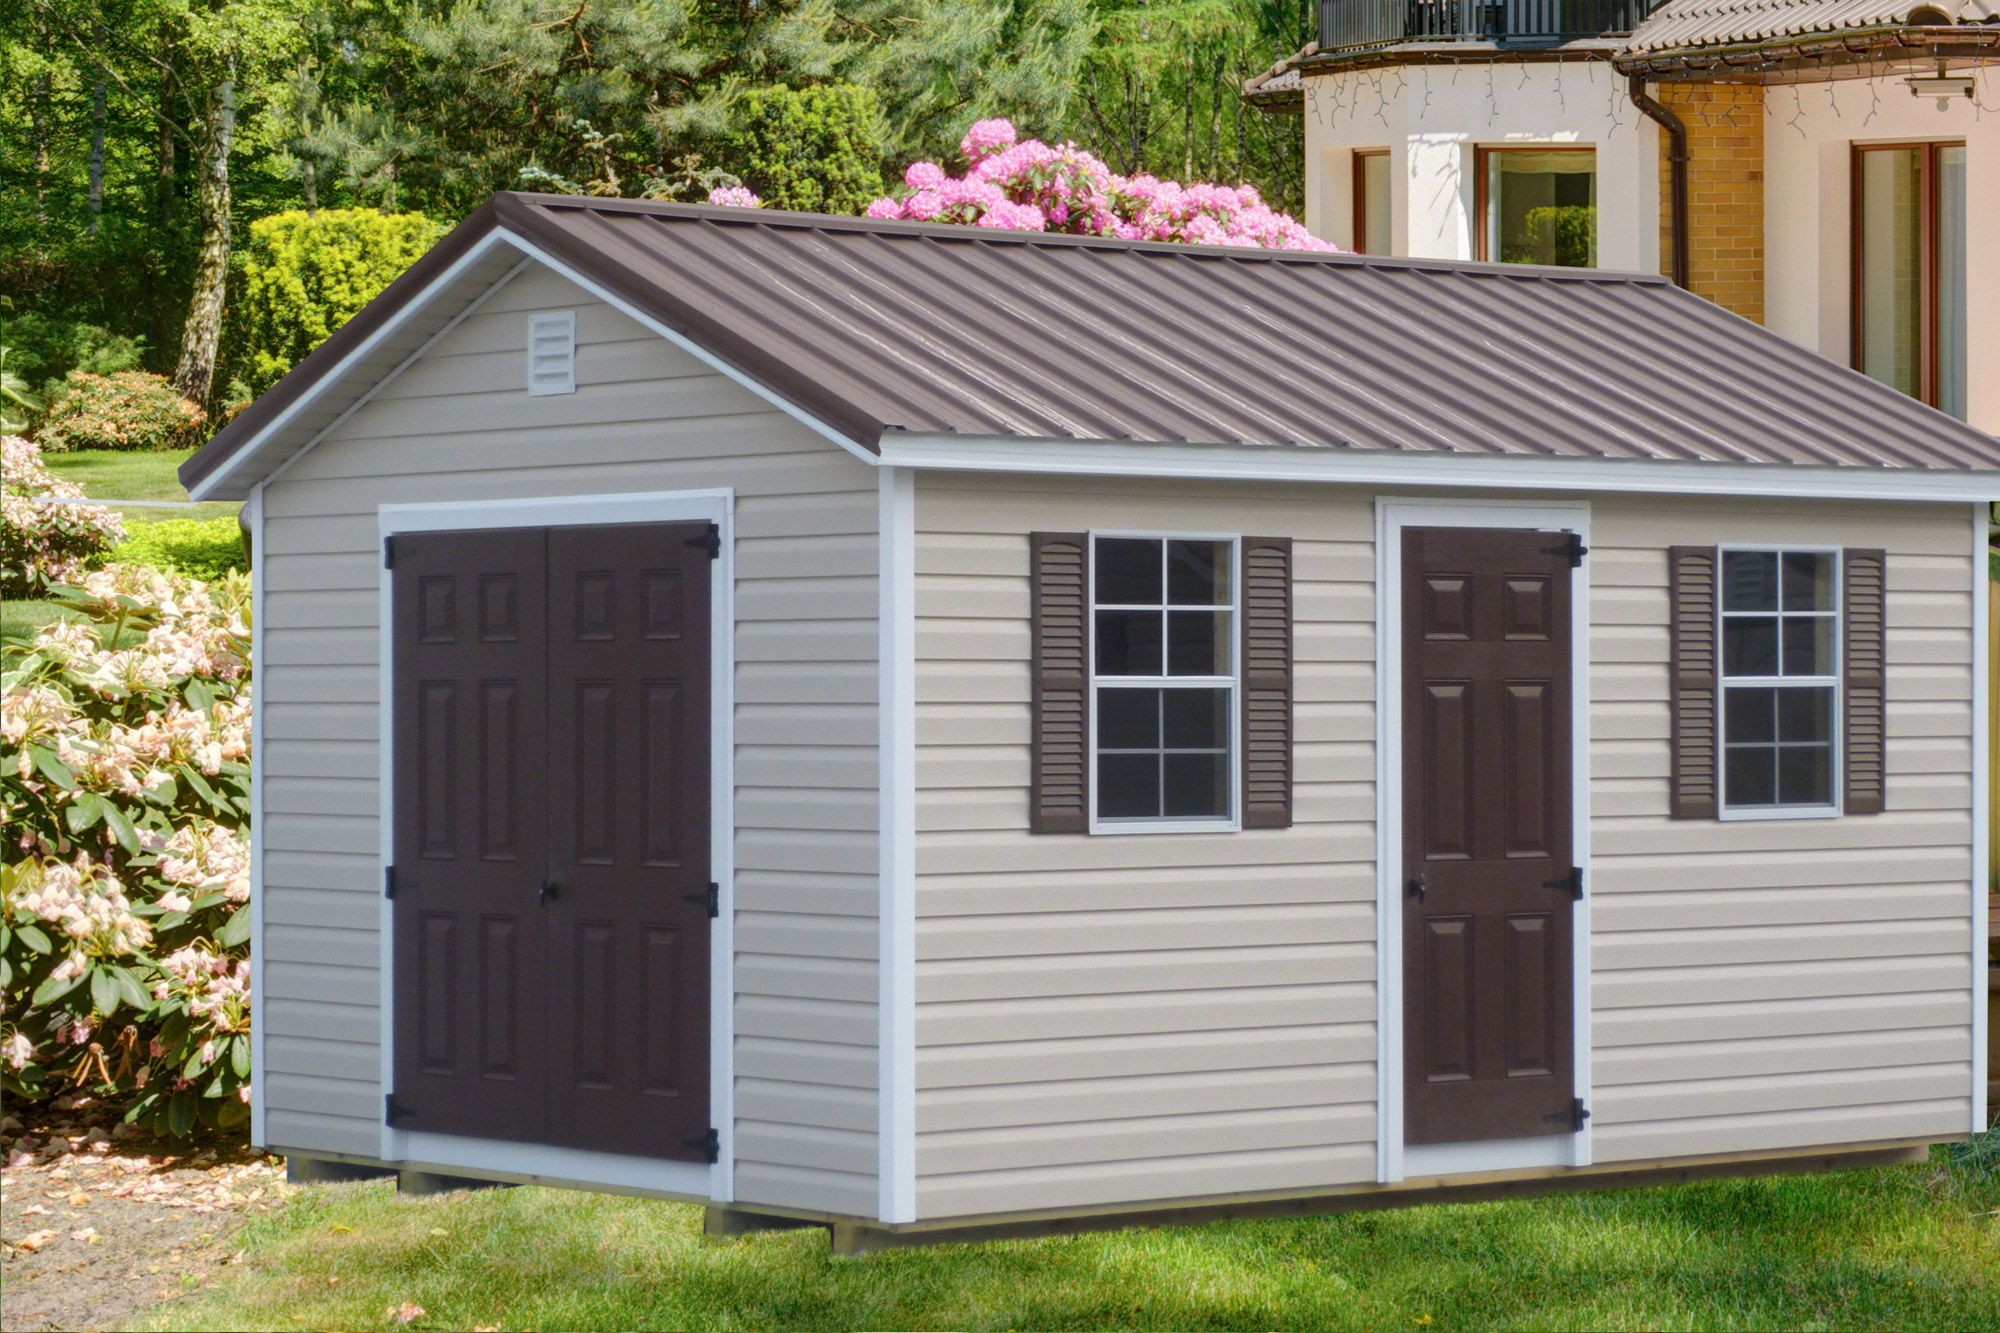 sheds ft arrow amazon outdoor shed garden com x storage green vinyl dp sheridan meadow steel almond